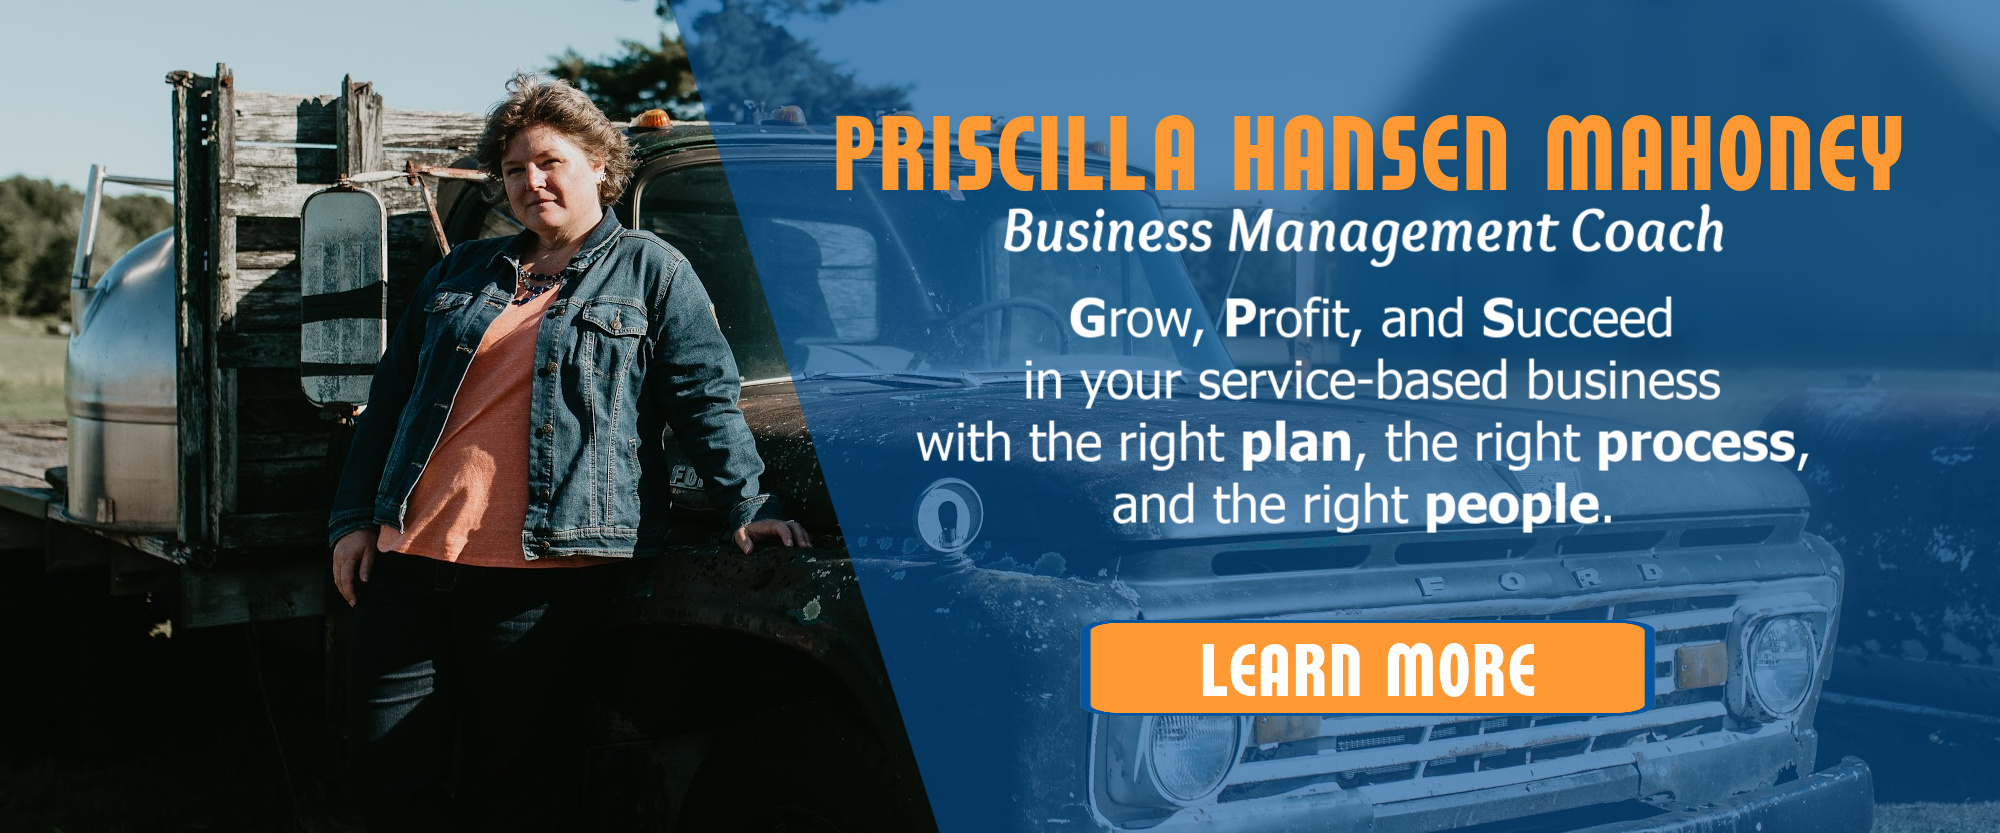 Priscilla Hansen Mahoney, Business Management Coach, Business Consultant, Business Coach South Portland Maine